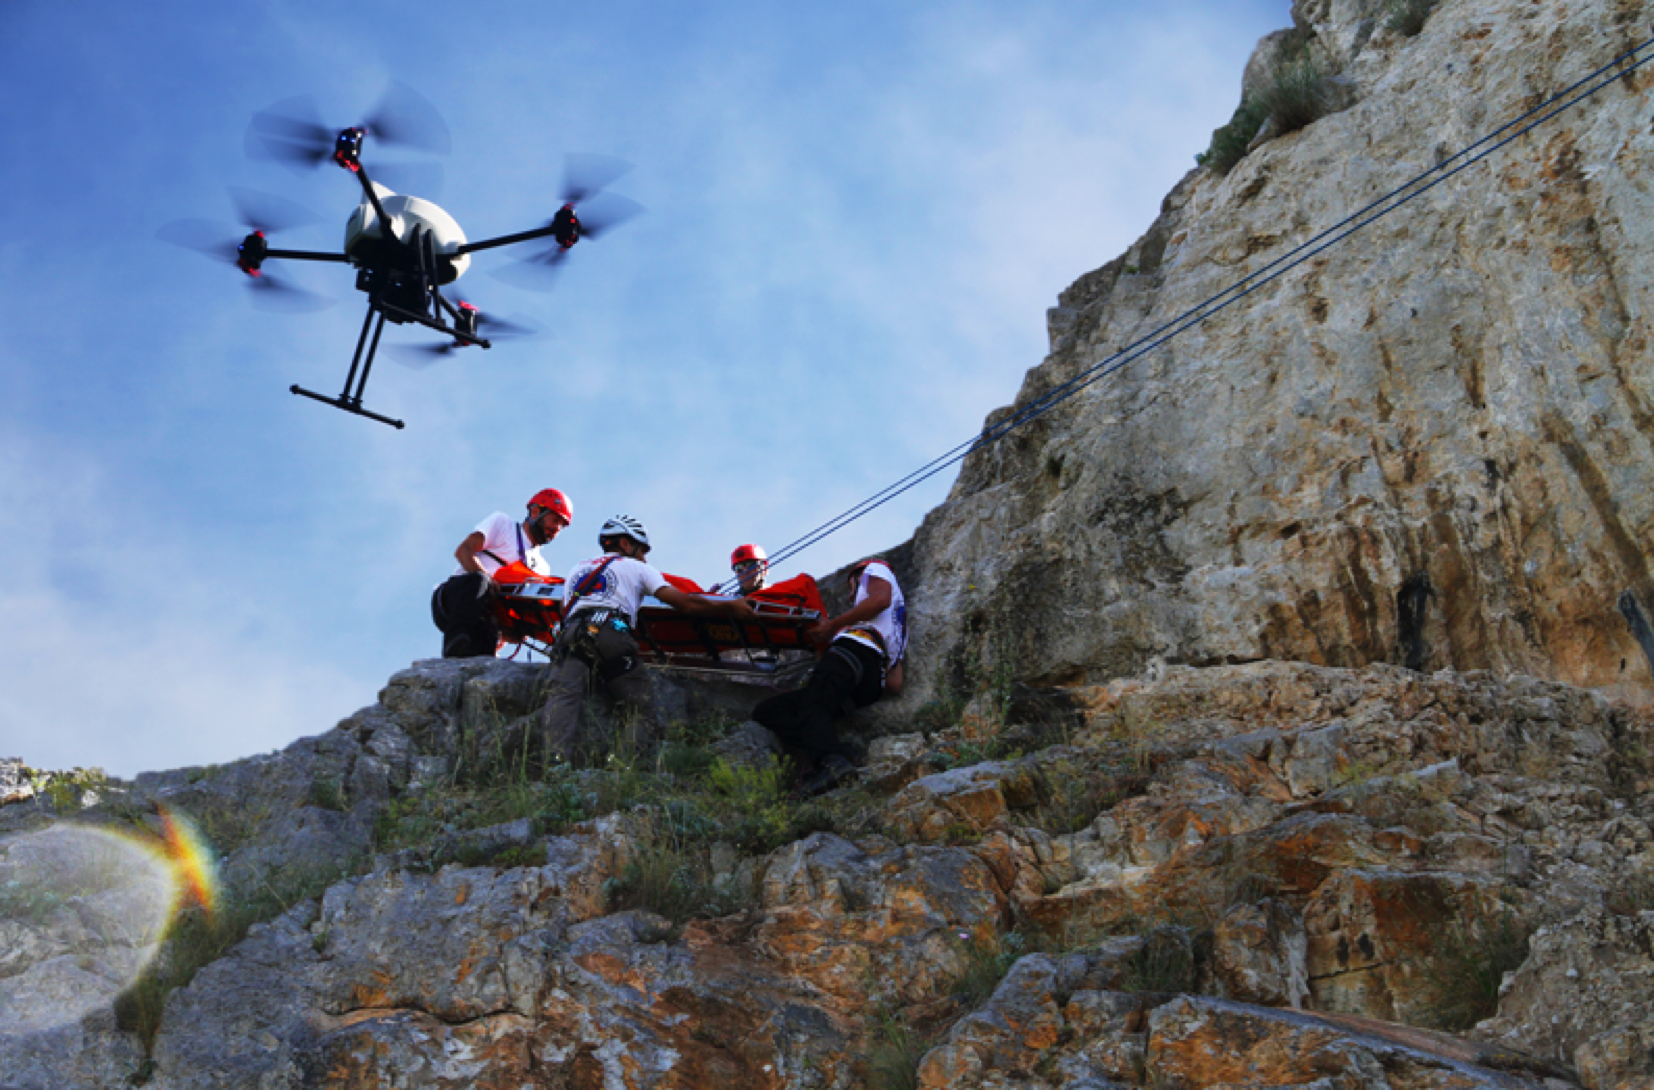 Drones For Emergency Service Cover More Ground From Above